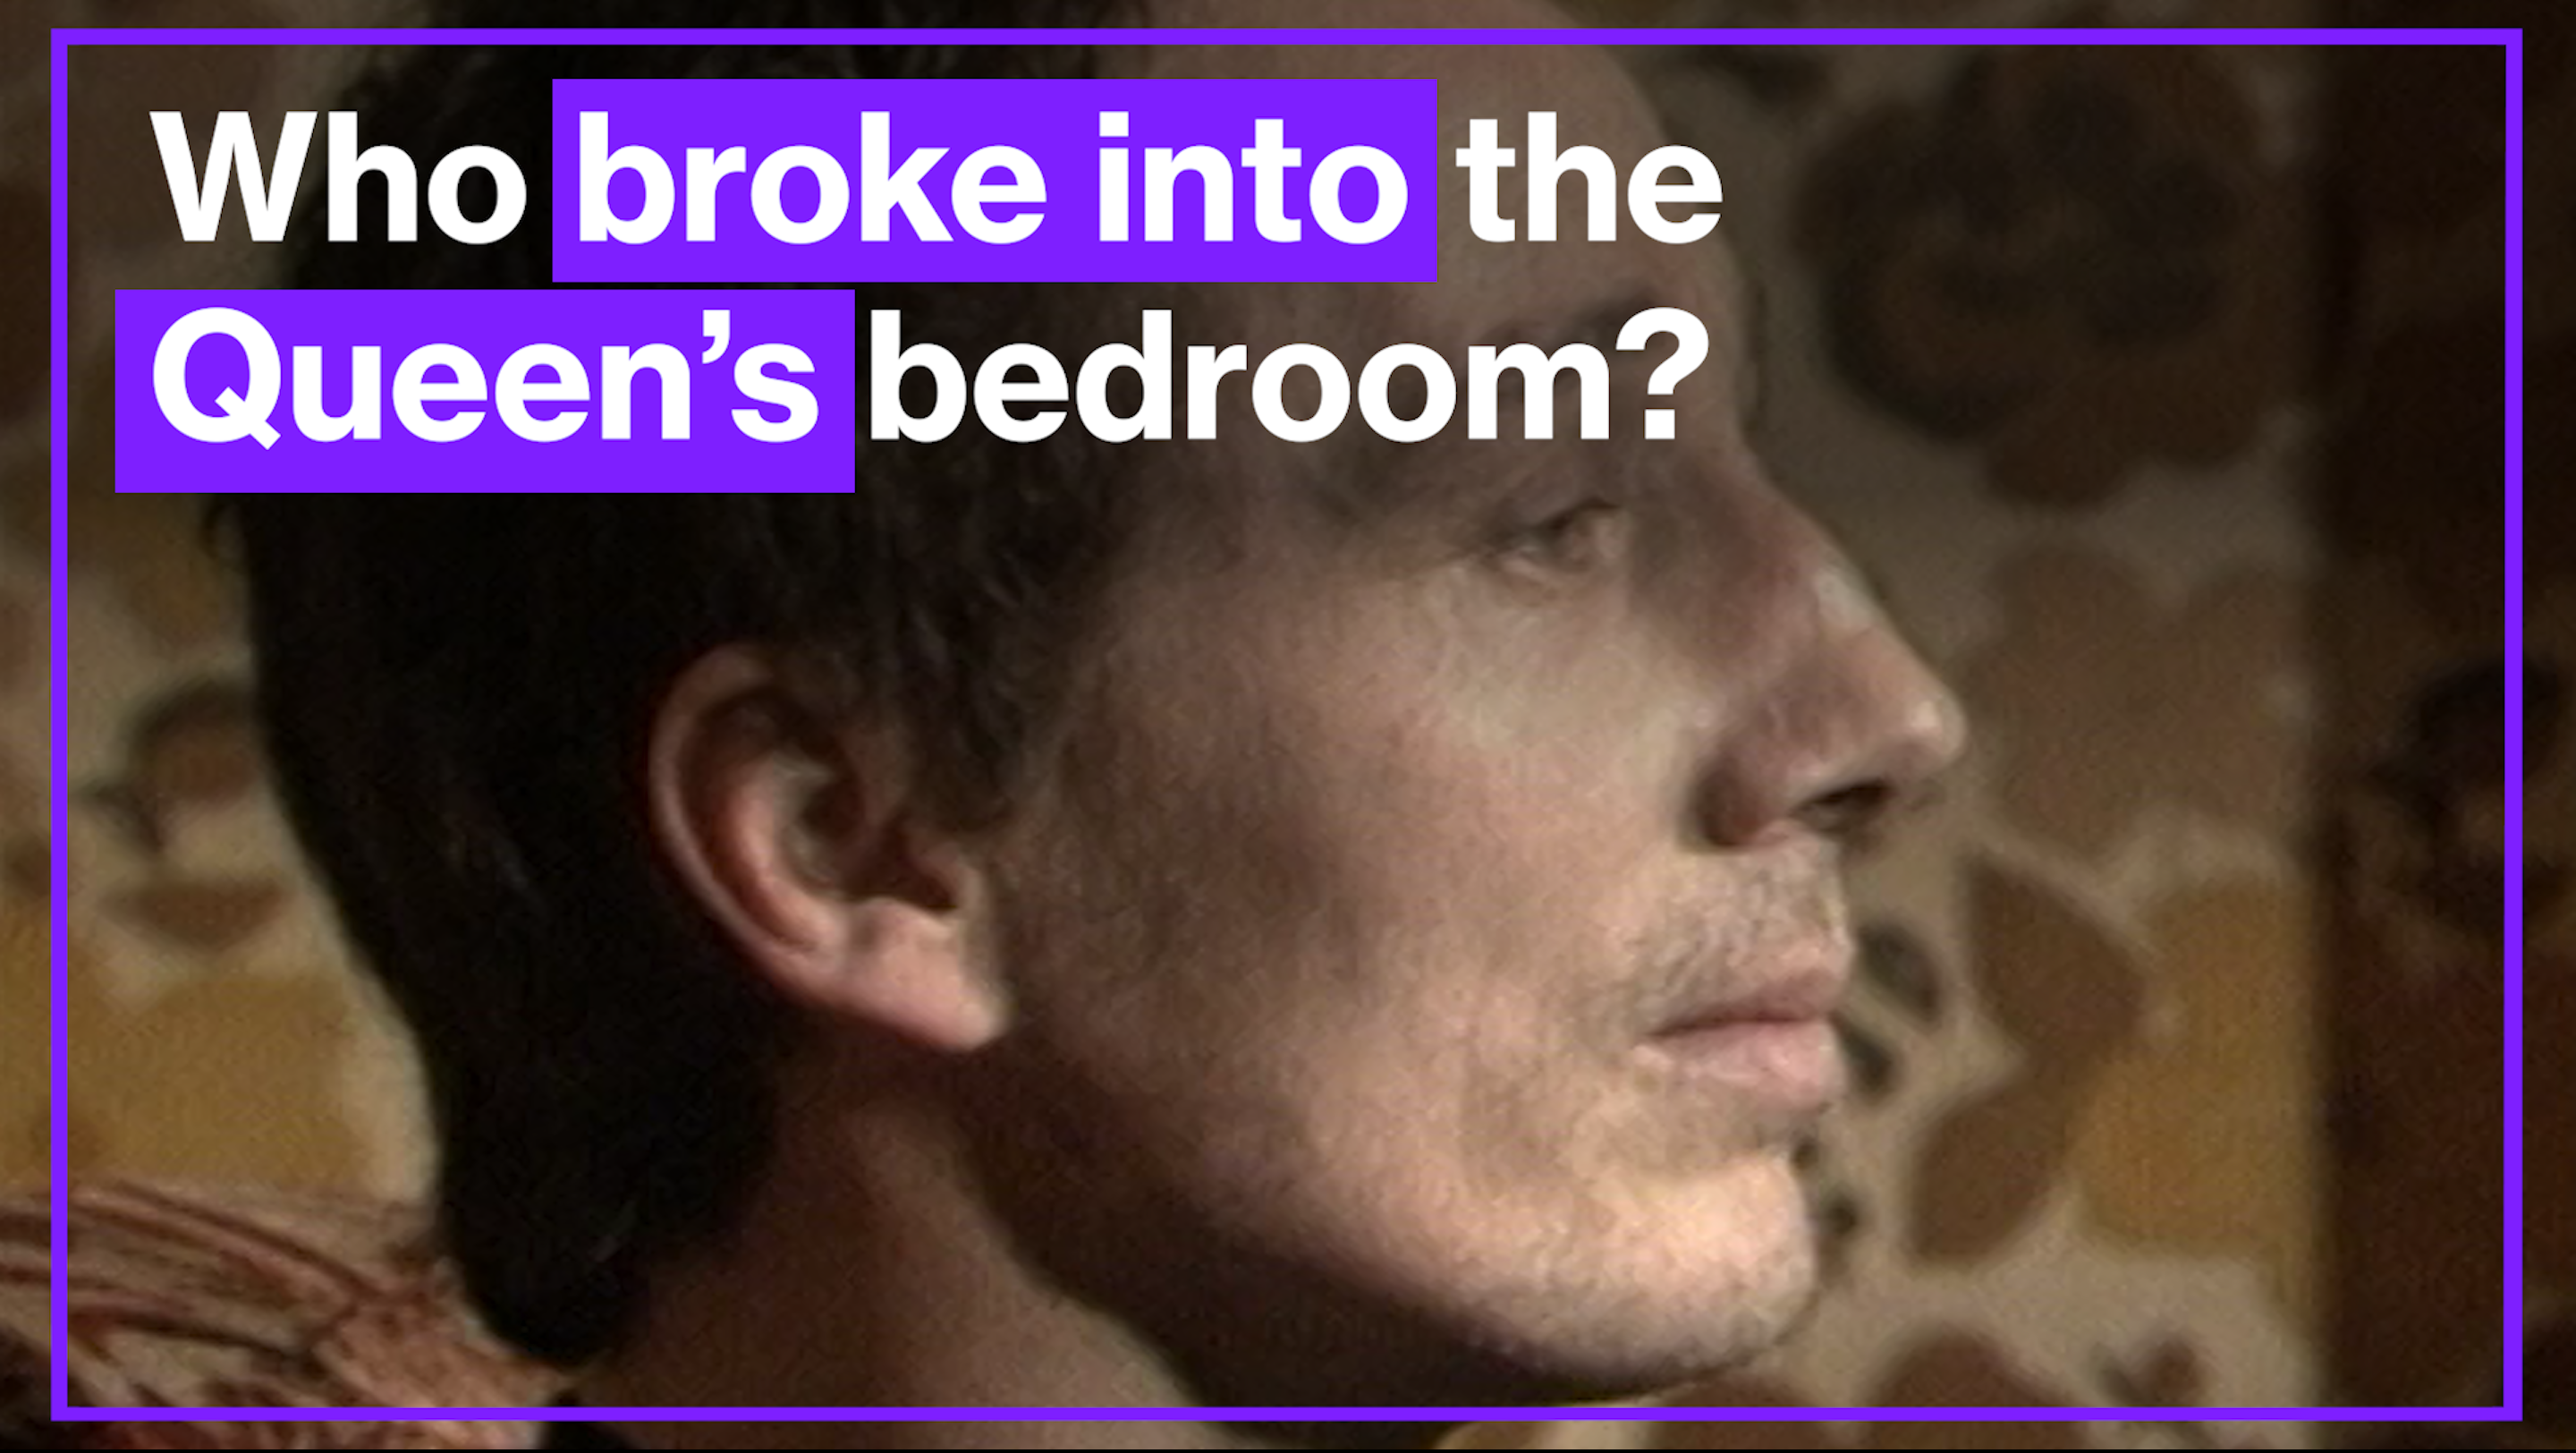 Real Interview Footage With Michael Fagan The Man Who Broke Into The Queen S Bedroom